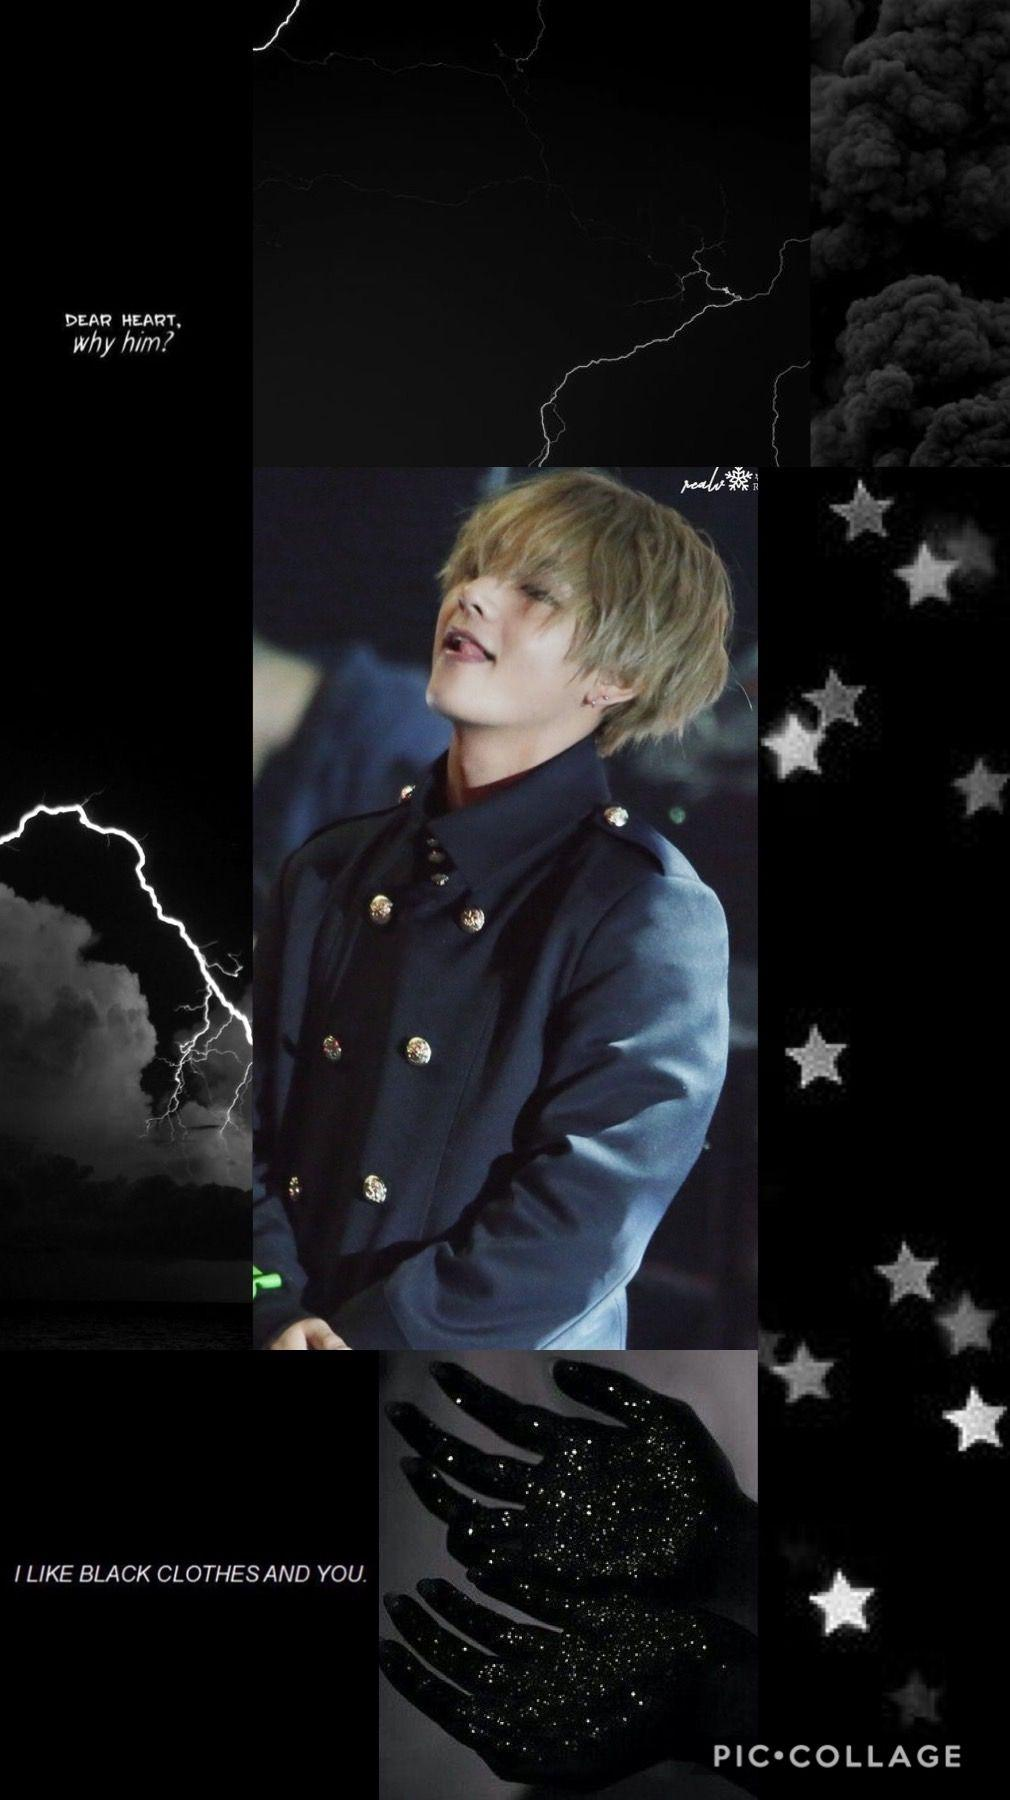 Taehyung Aesthetic Dark Wallpapers Wallpaper Cave